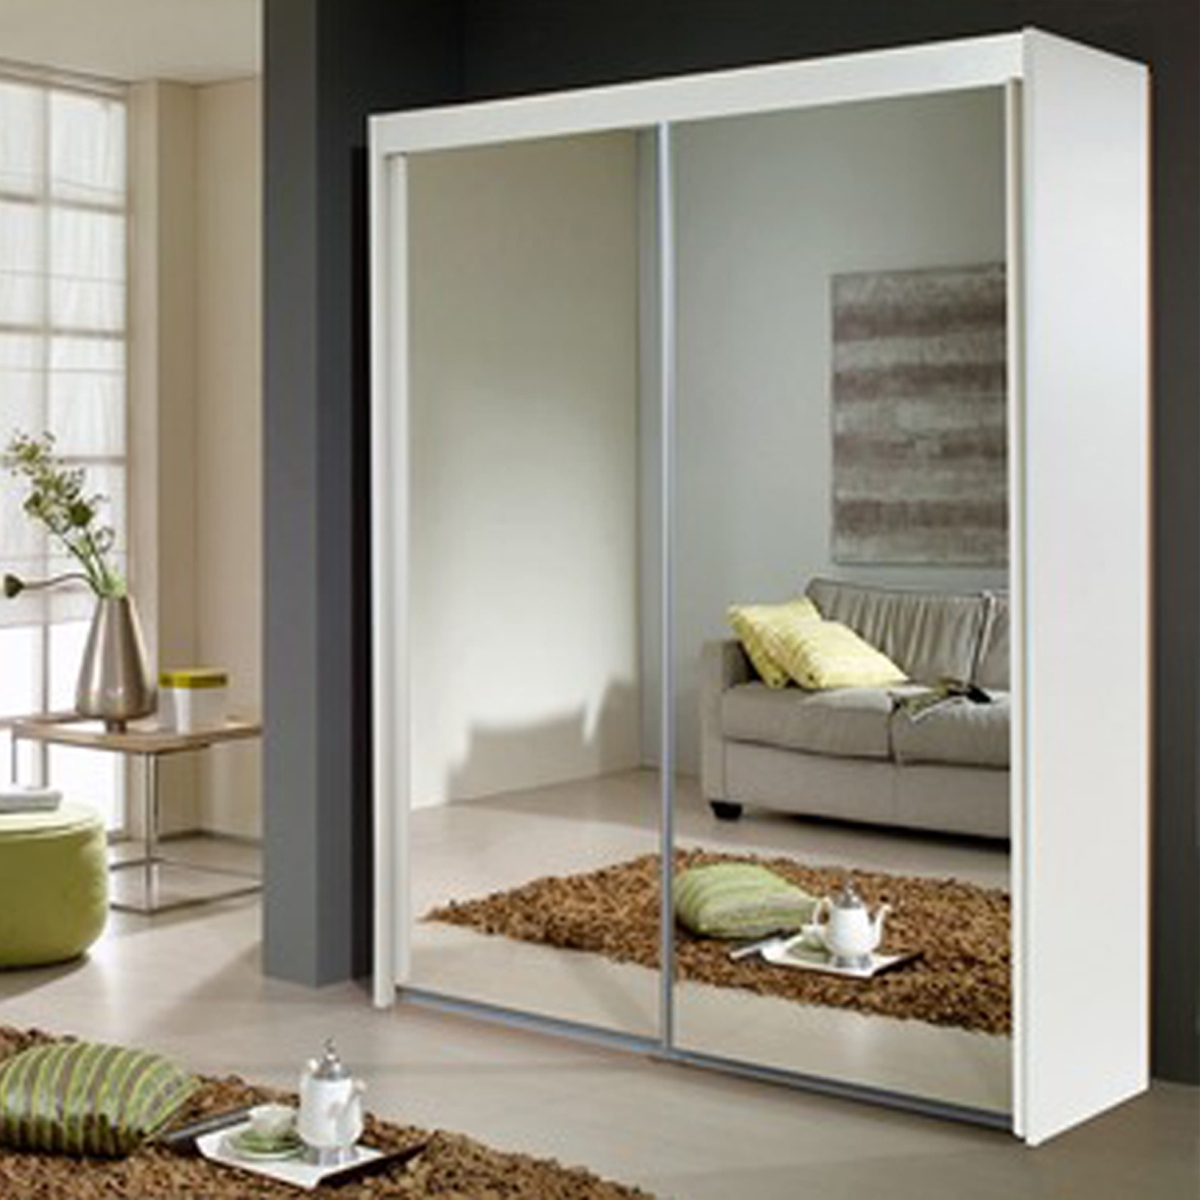 Sliding Door Mirrored Wardrobe From The House Of Reeves Croydon For Newest Cheap Mirrored Wardrobes (View 6 of 15)